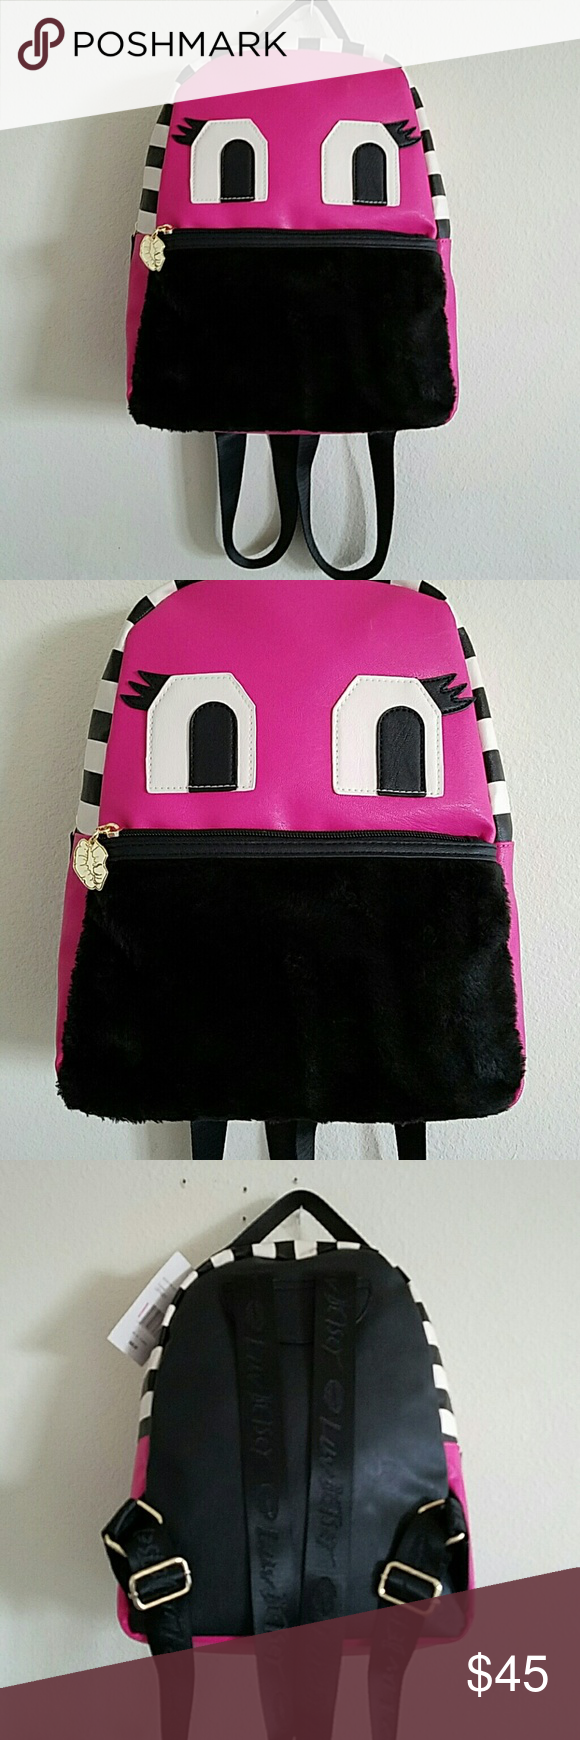 """New Betsey Johnson LBTazzy W/Fur Bottom Backpack This is brand new with the tags a HTF Betsey Johnson  small with fur front bottom backpack.This is called the monster backpack,fuchsia in color and says:LBTazzy.This would make a perfect Christmas gift for any girl or woman that likes Betsey Johnson. This is small so it could be used as a larger handbag or it has shoulder straps that are adjustable on the back.The measurements are:13""""x12""""x6"""".On the front is a zippered pocket,inside is 2 slots…"""